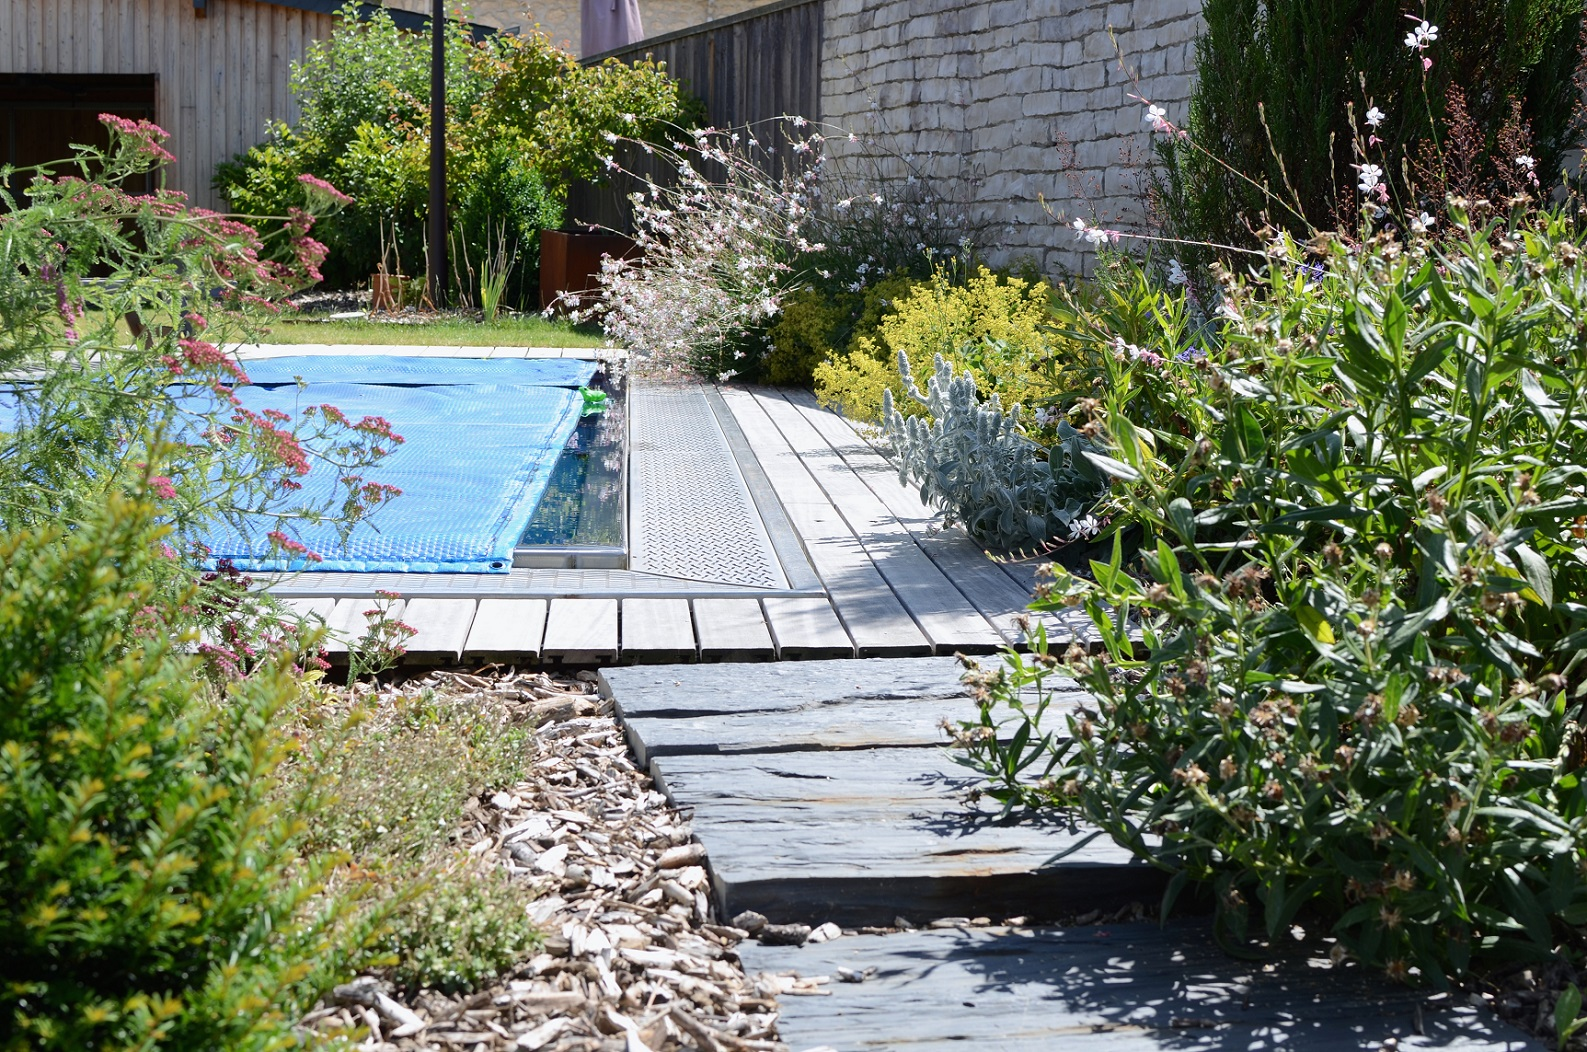 Am nagement de piscine fl jardin paysagiste cr ateur for Piscine et jardin marseille 2017